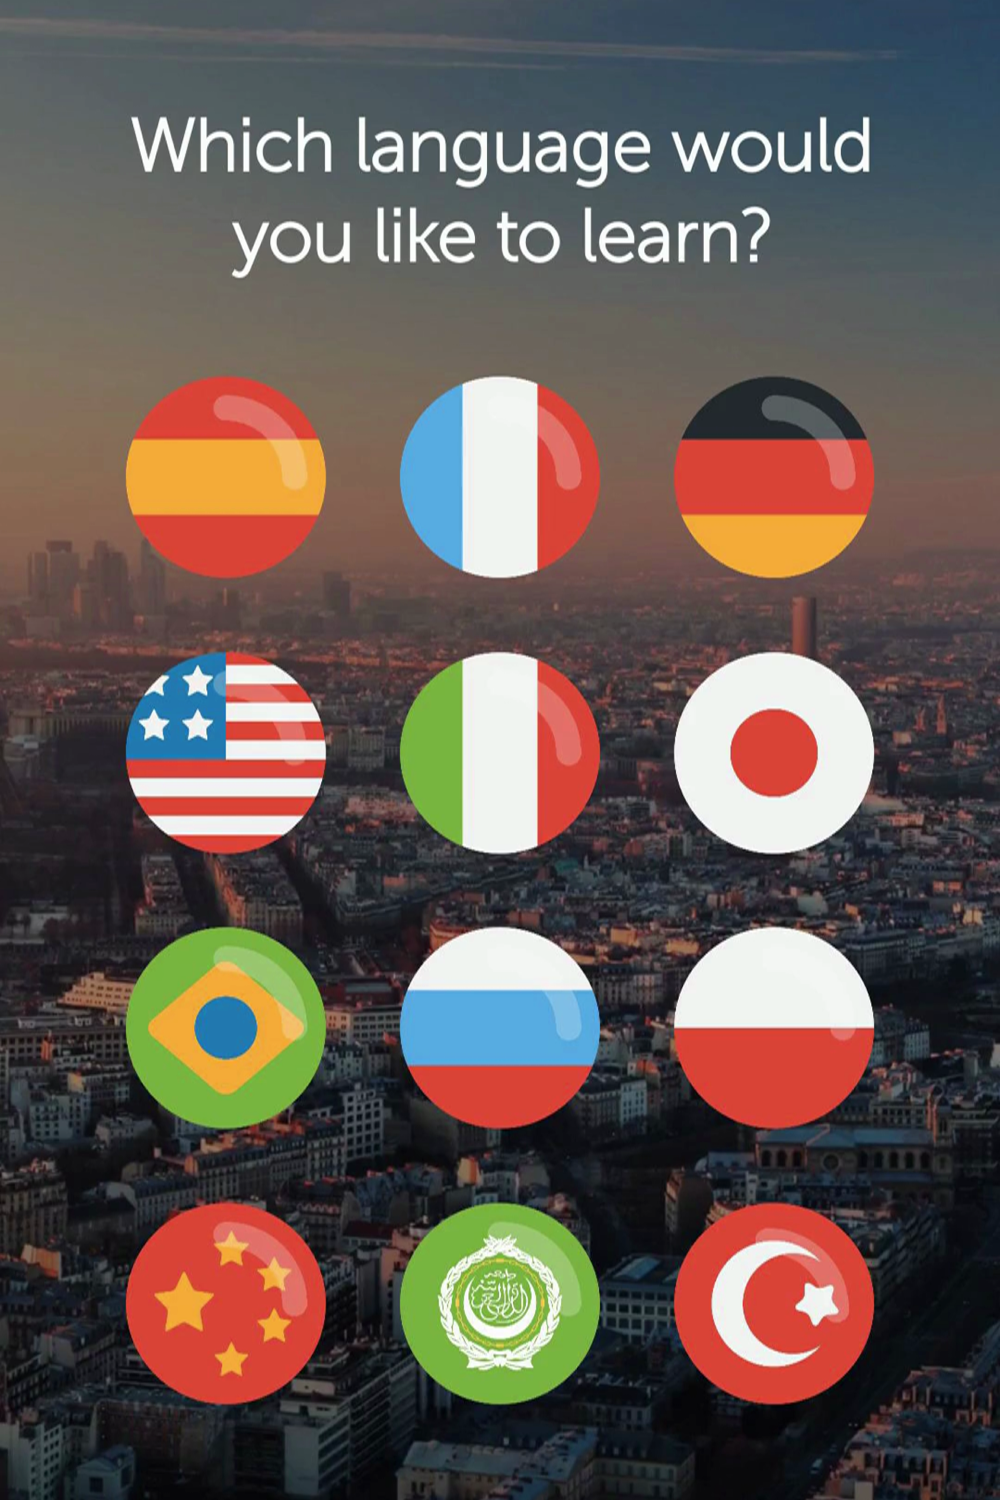 Join 90 million people learning to speak a language in 10